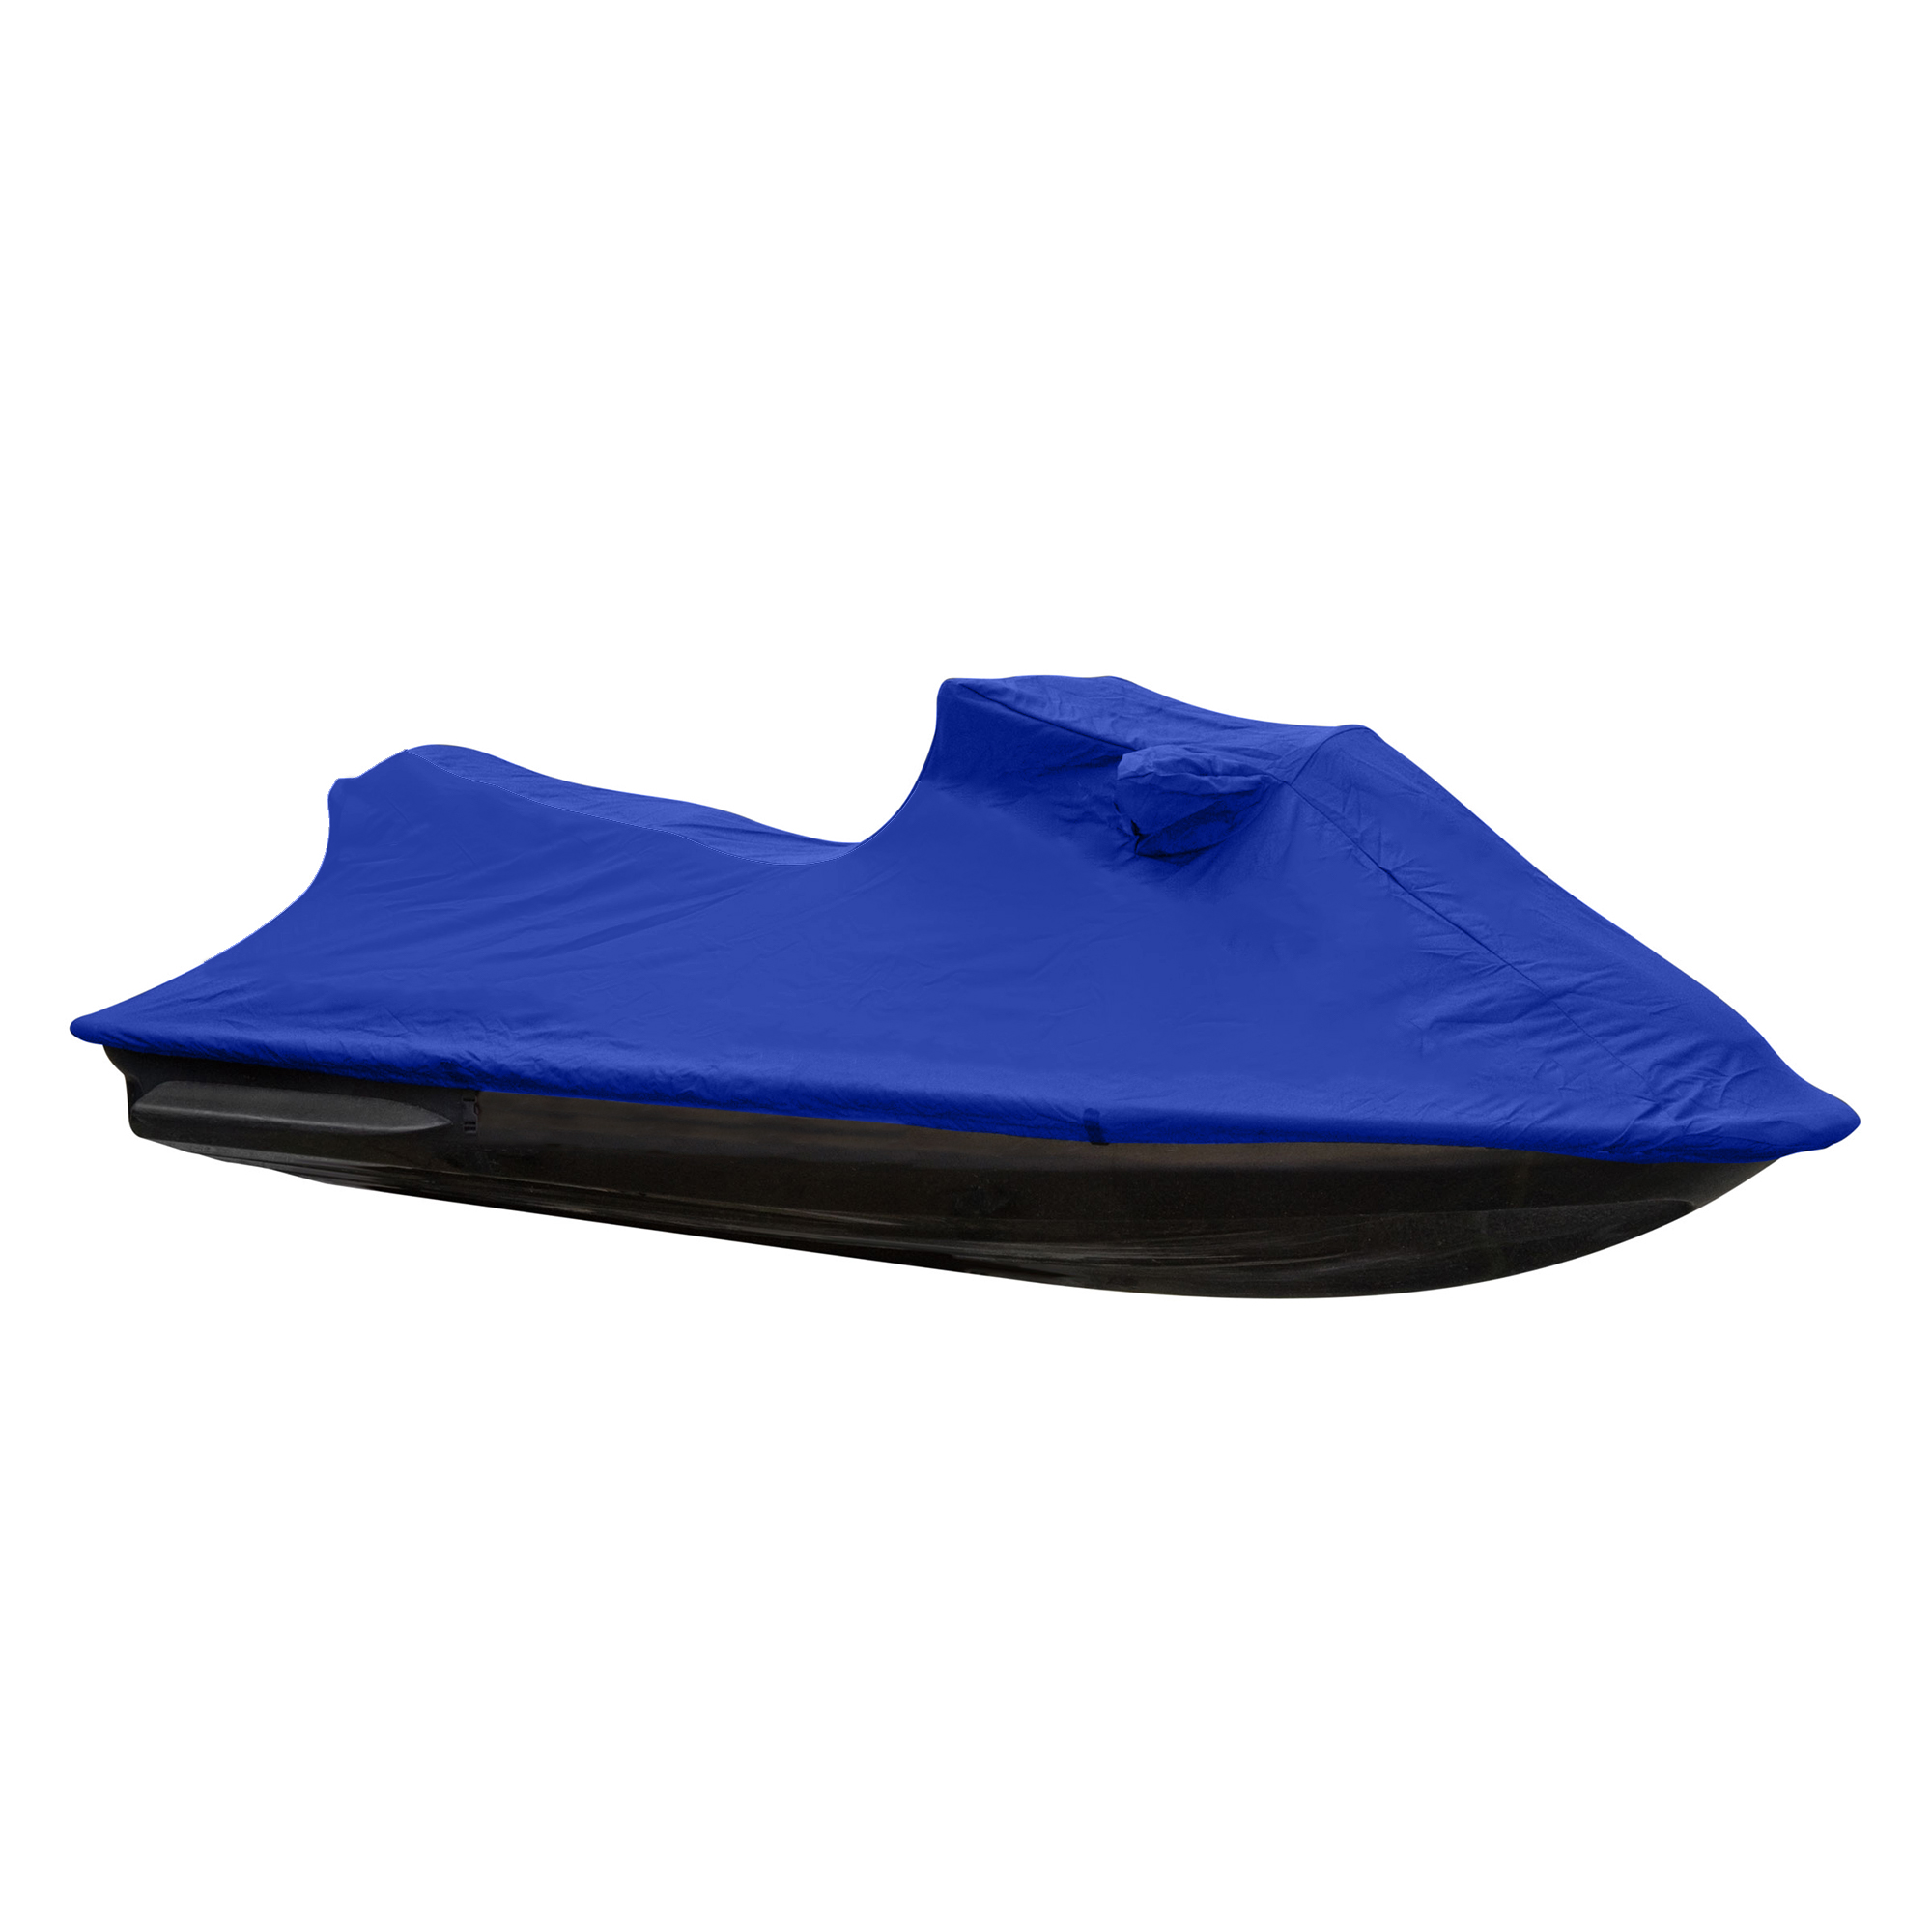 Westland Exact Fit PWC Cover for Yamaha